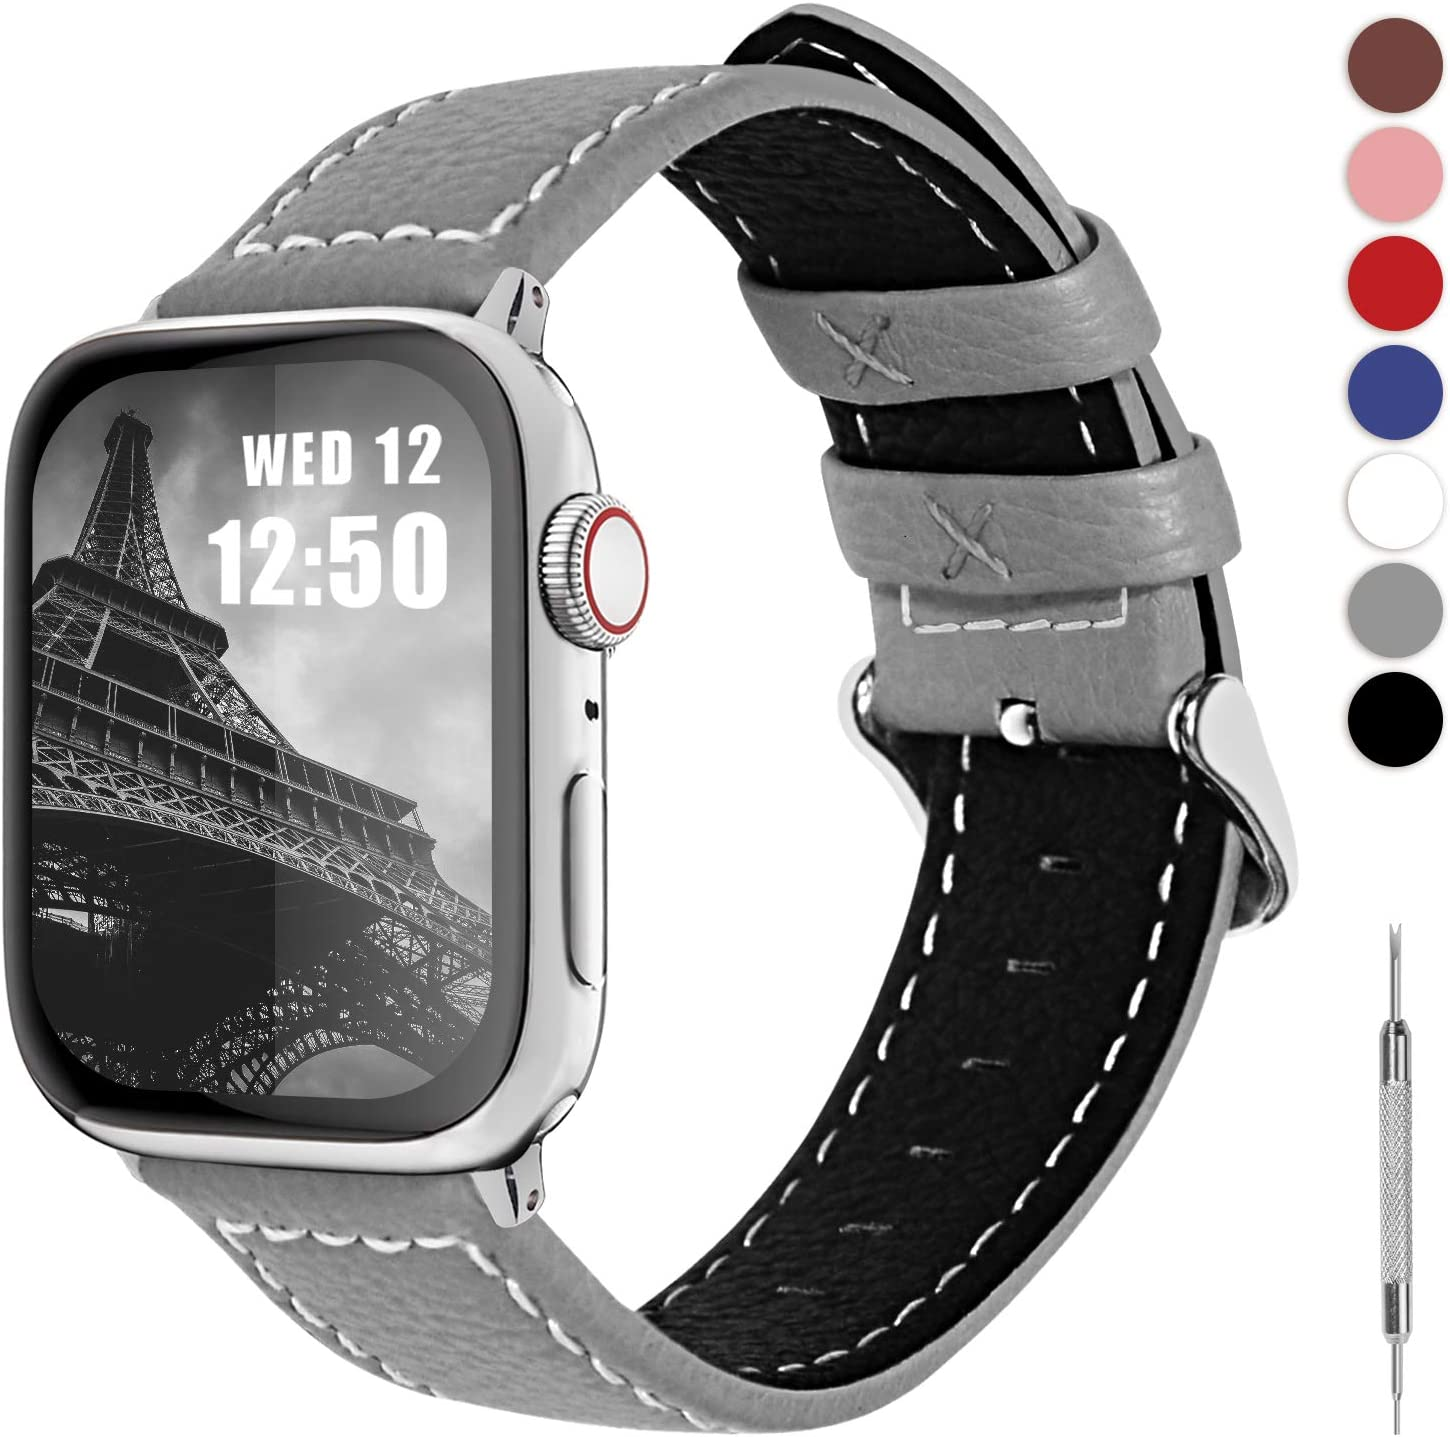 Fullmosa LC-Jan Cuero Correa, 7 Colores Correa Compatible Apple Watch/iWatch Series 5, Series 4, Series 3, Series 2, Series 1, 38mm, 42mm, Gris 42mm: Amazon.es: Electrónica